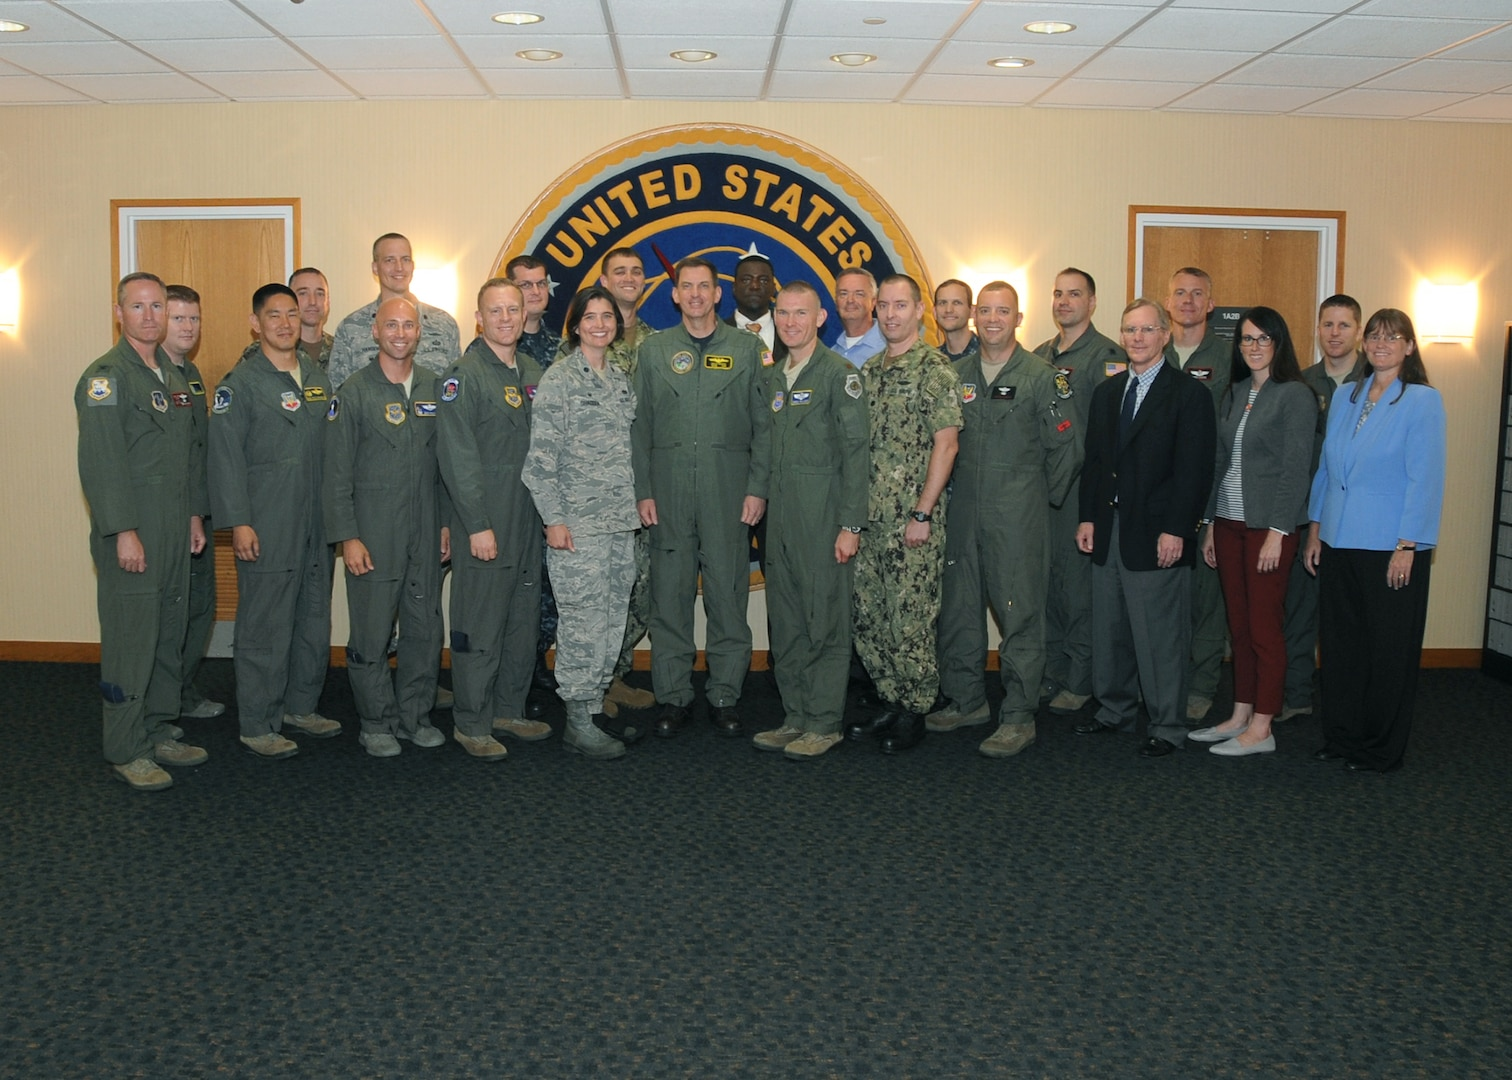 U.S. Navy Vice Adm. David Kriete (center), deputy commander of U.S. Strategic Command (USSTRATCOM), meets with participants of the Nuclear Commanders Course (NCC) at Offutt Air Force Base, Neb., July 12, 2018. NCC is a two-day course designed to provide new nuclear enterprise commanders with a foundational understanding of USSTRATCOM's role in building and maintaining the nuclear war plan, nuclear command and control capabilities, and their unit's role in the strategic deterrence mission. USSTRATCOM has global responsibilities assigned through the Unified Command Plan that include strategic deterrence, nuclear operations, space operations, joint electromagnetic spectrum operations, global strike, missile defense, and analysis and targeting.